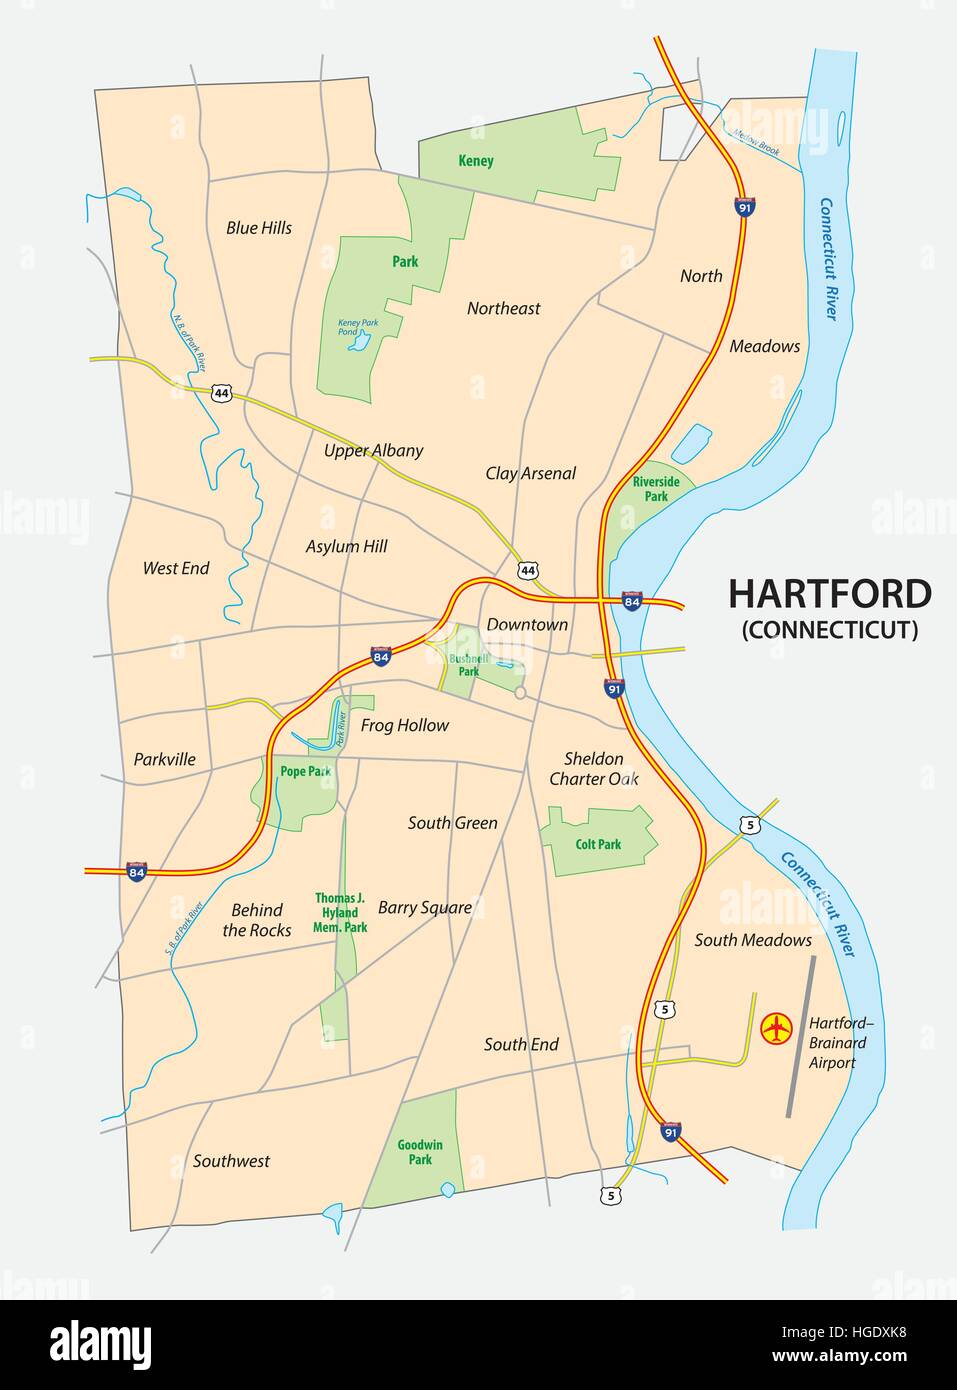 Connecticut In Us Map.Road Map Of Hartford The Capital Of The Us State Of Connecticut